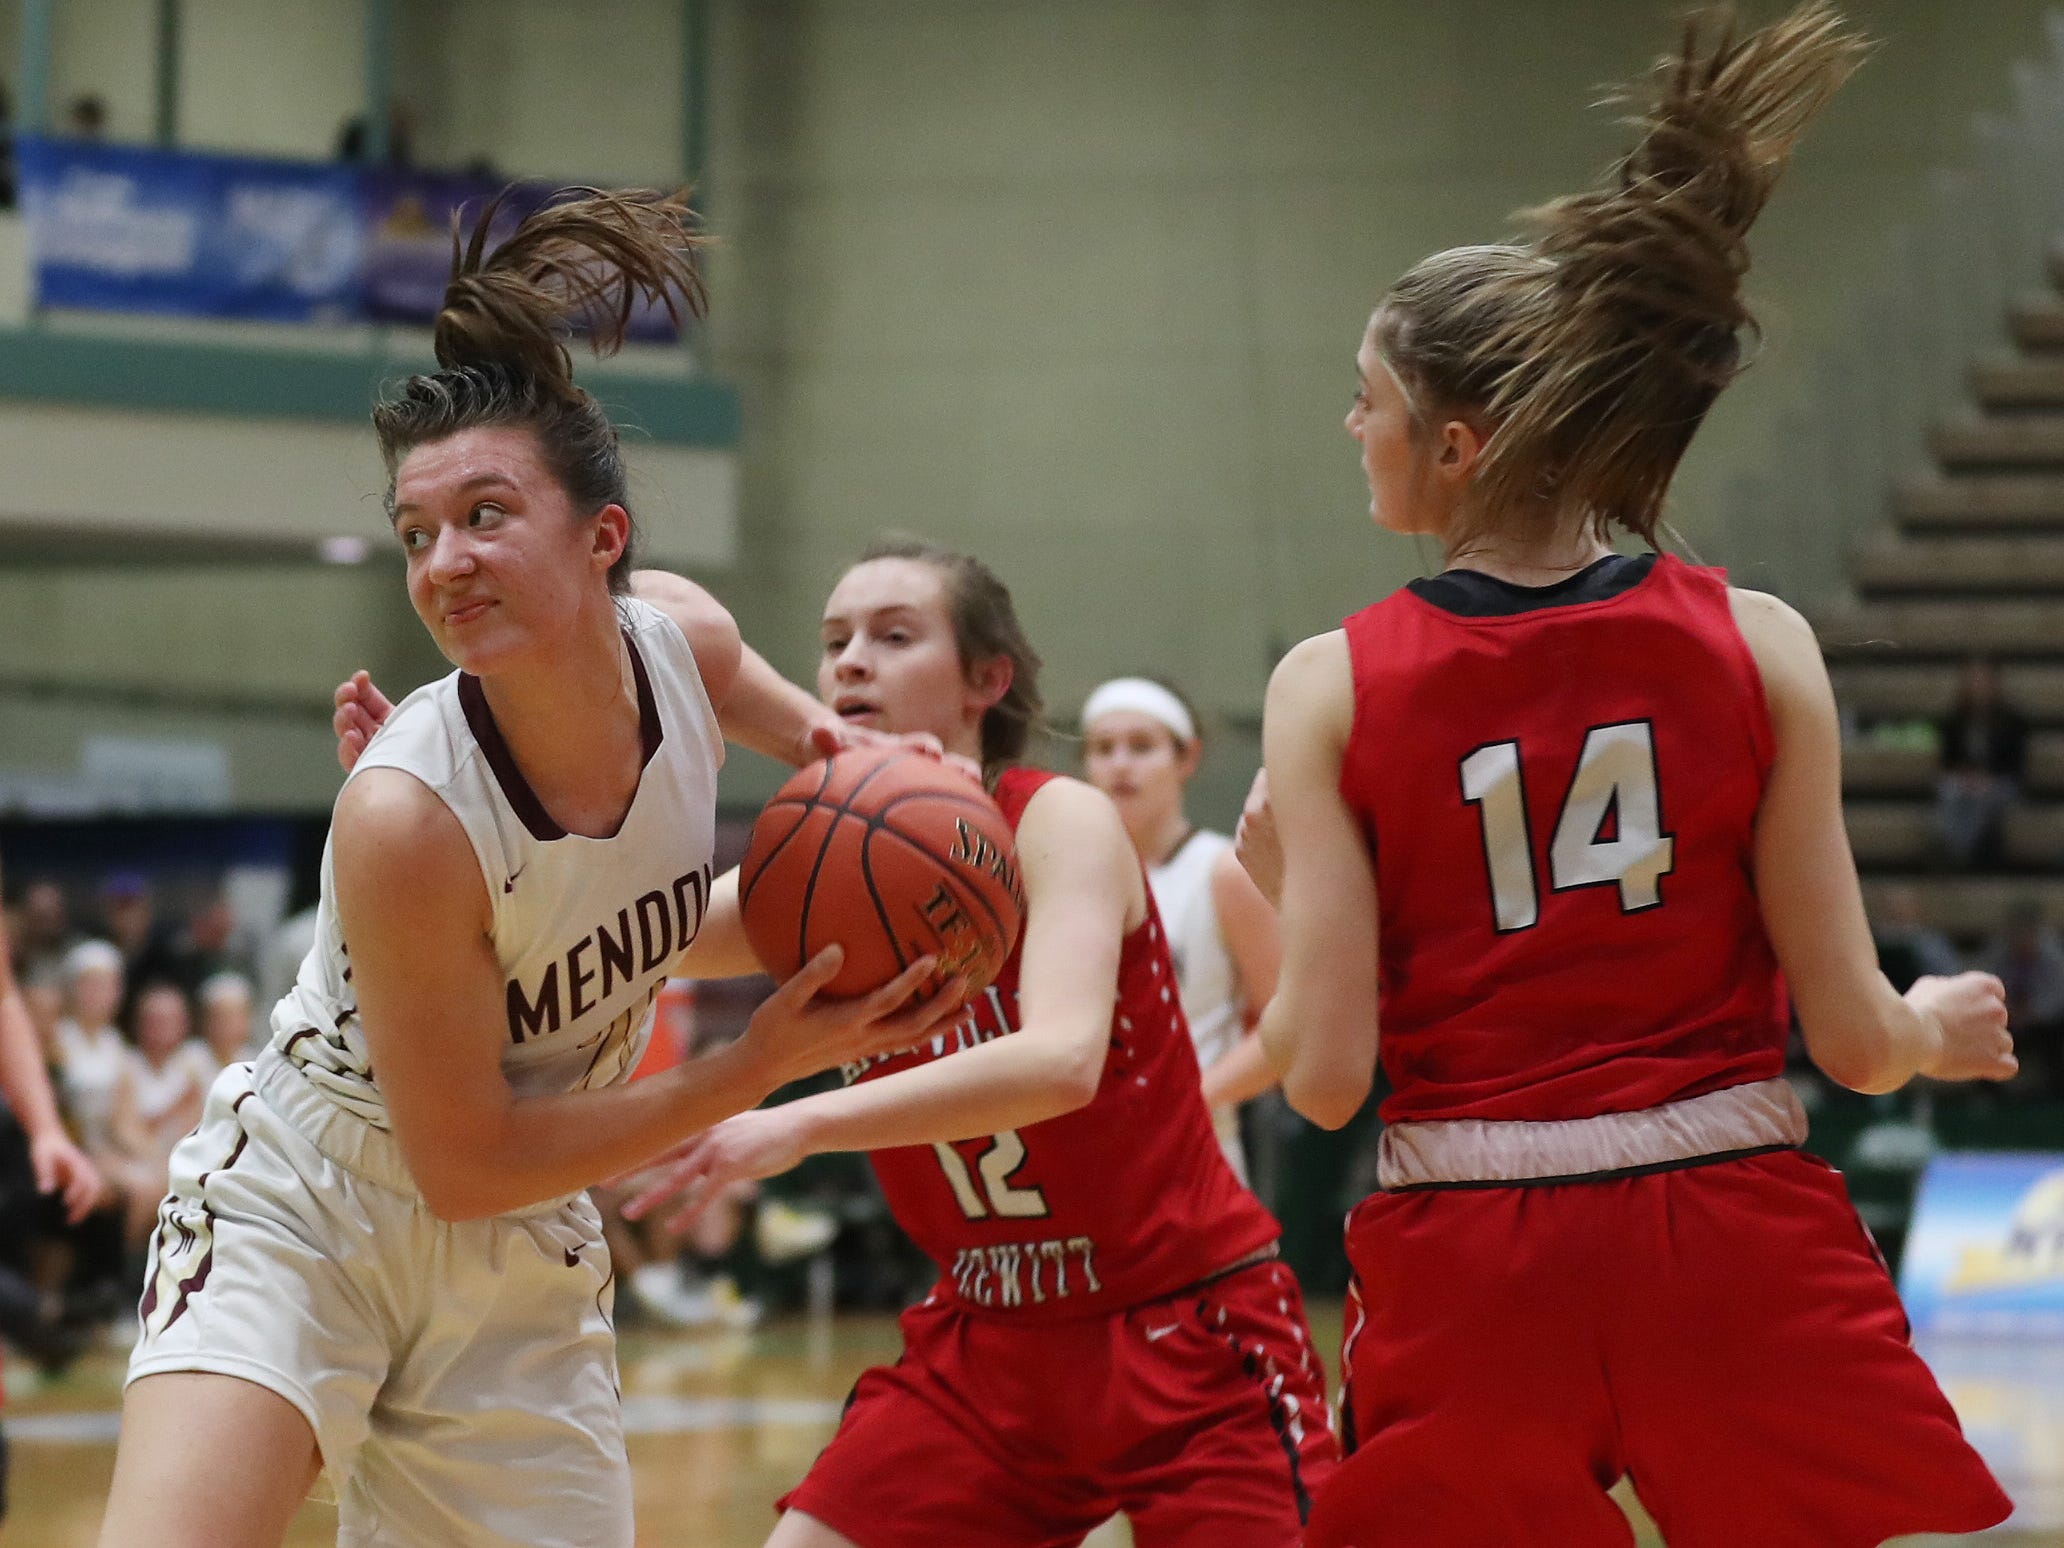 Pittsford Mendon's Alana Fursman (21) moves towards the basket against Jamesville-DeWitt's Sydney Baker (2) during the girls Class A state semifinal at Hudson Valley Community College in Troy March 16, 2019.